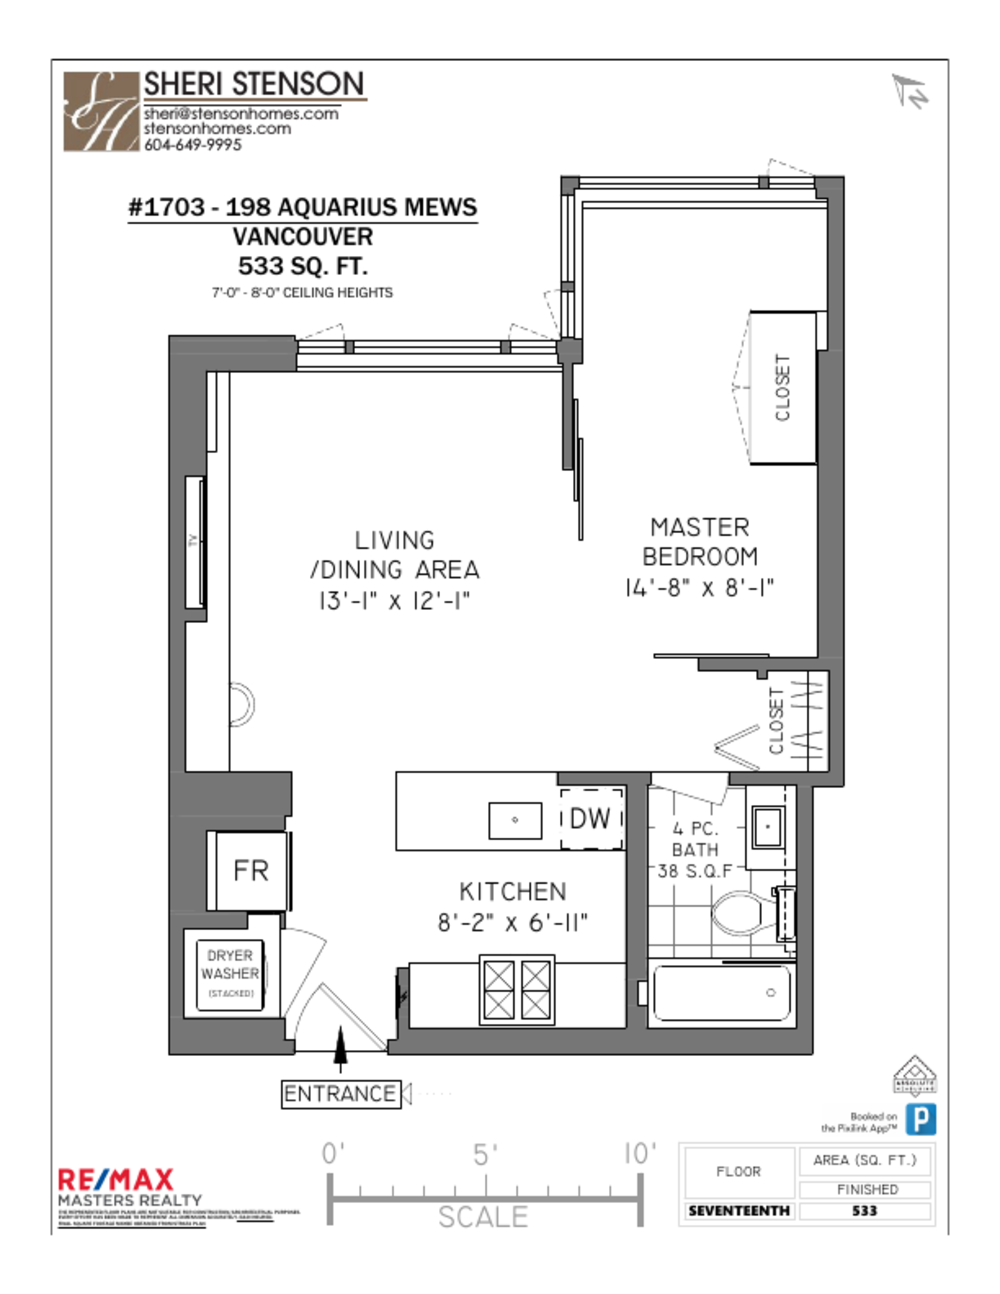 Floor Plan for a 1 Bedroom Apartment in Vancouver